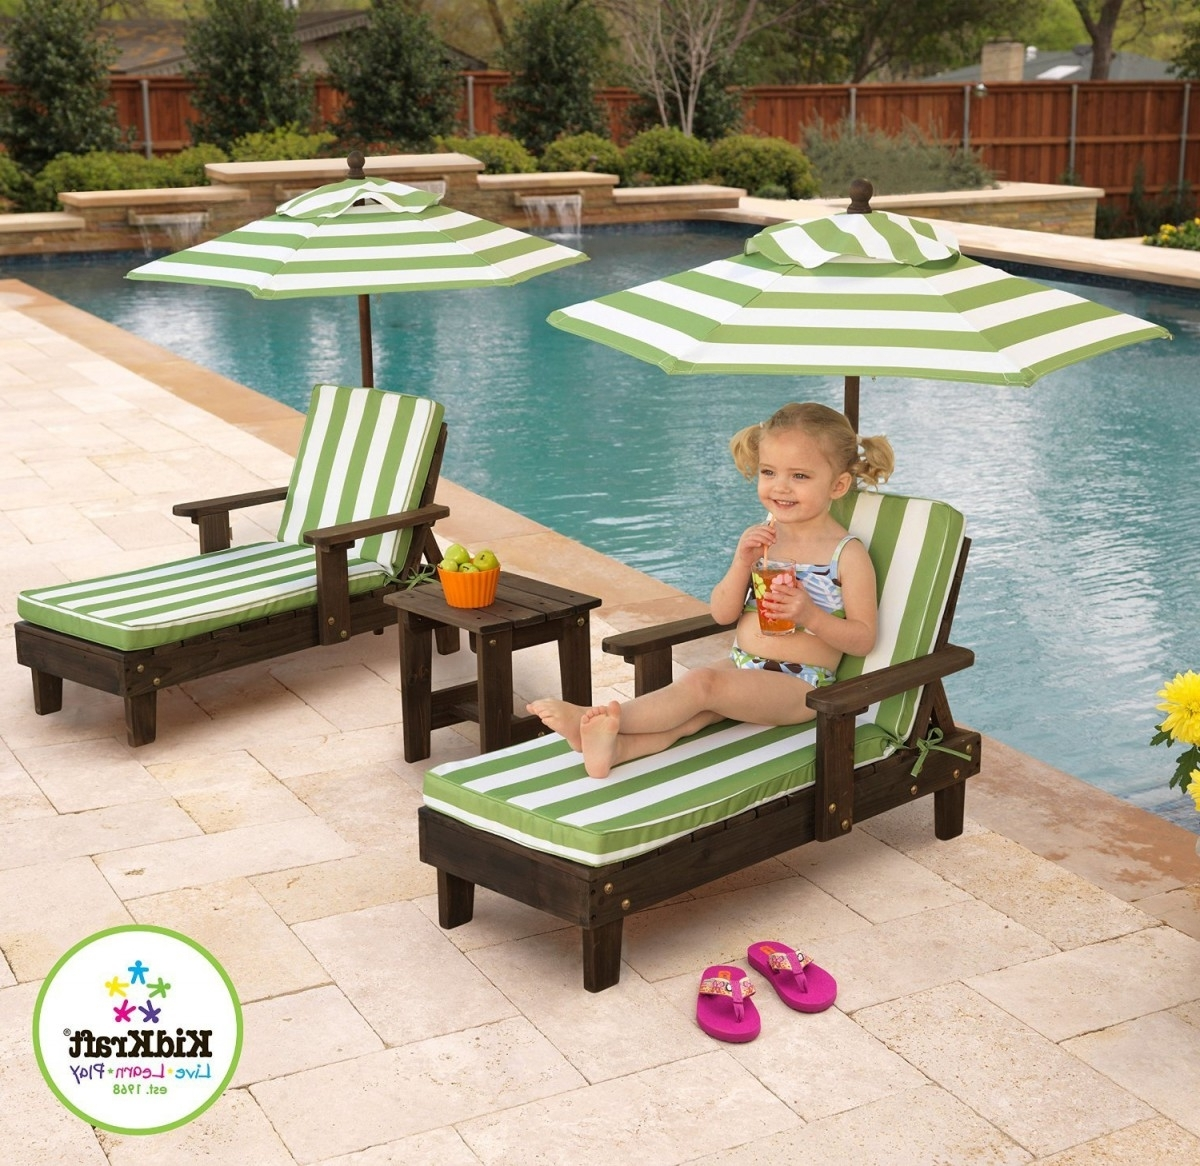 Kidkraft Outdoor Chaise Lounge Chairs And Umbrella Set Throughout 2017 Kidkraft Chaise Lounges (View 11 of 15)